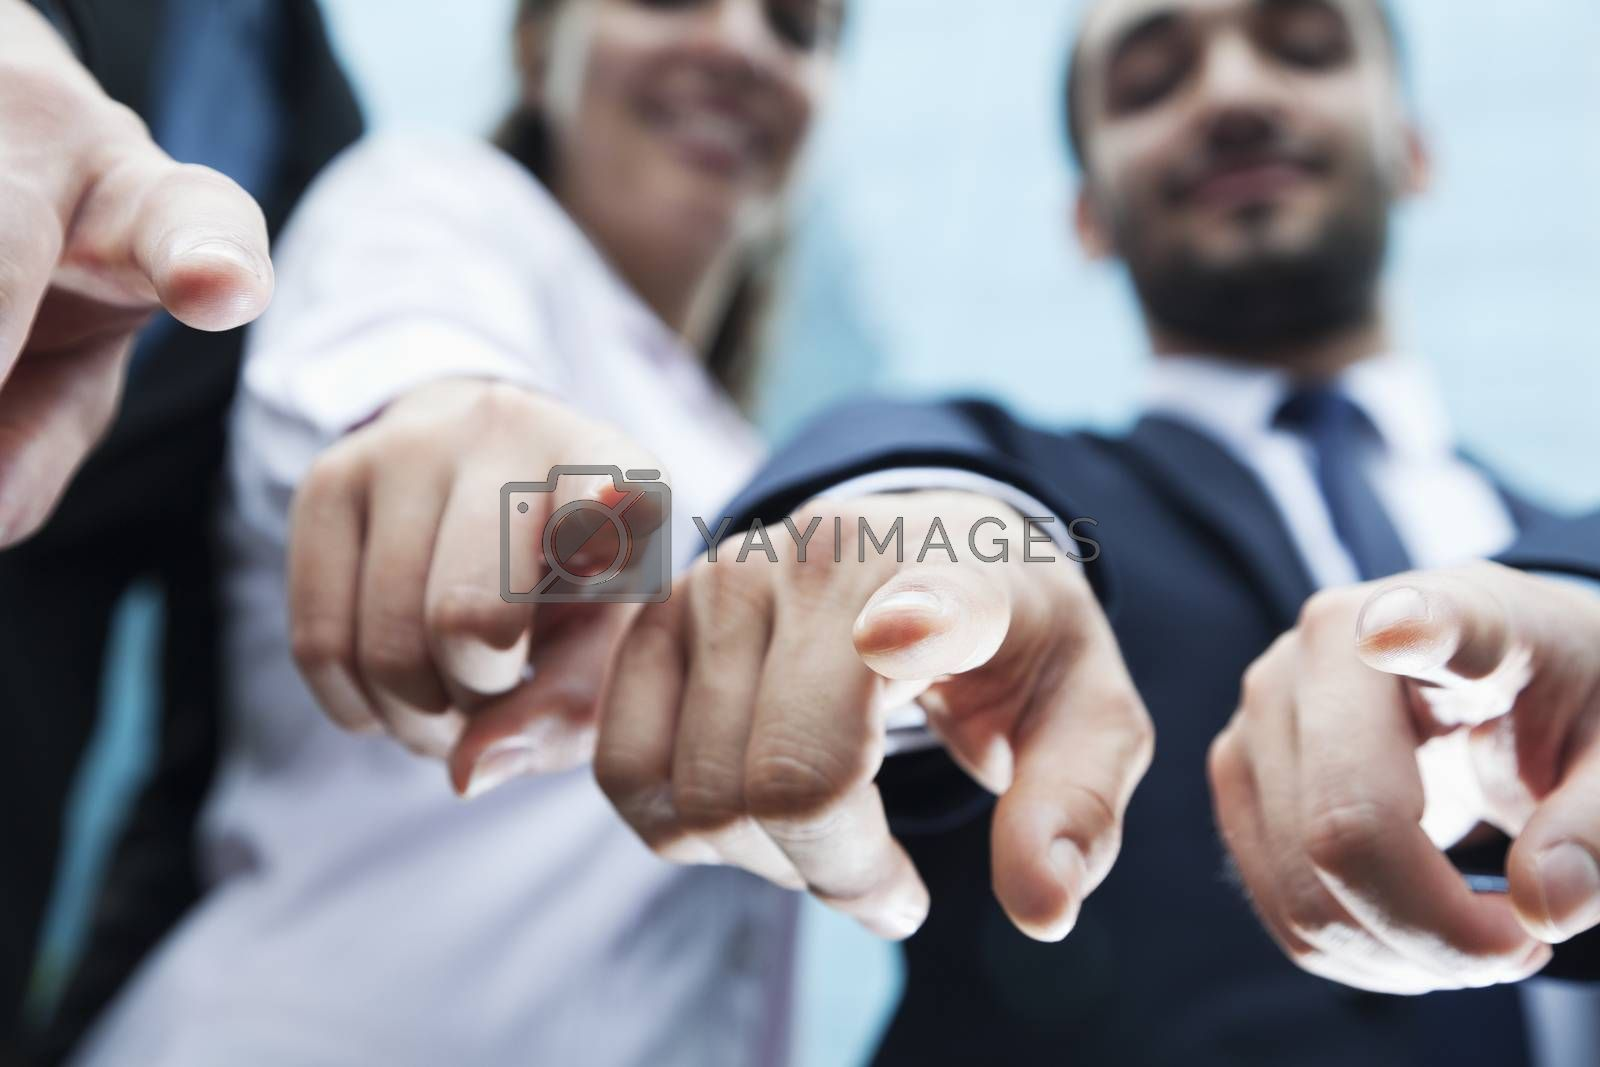 Close-up of four business people's fingers pointing at camera by XiXinXing